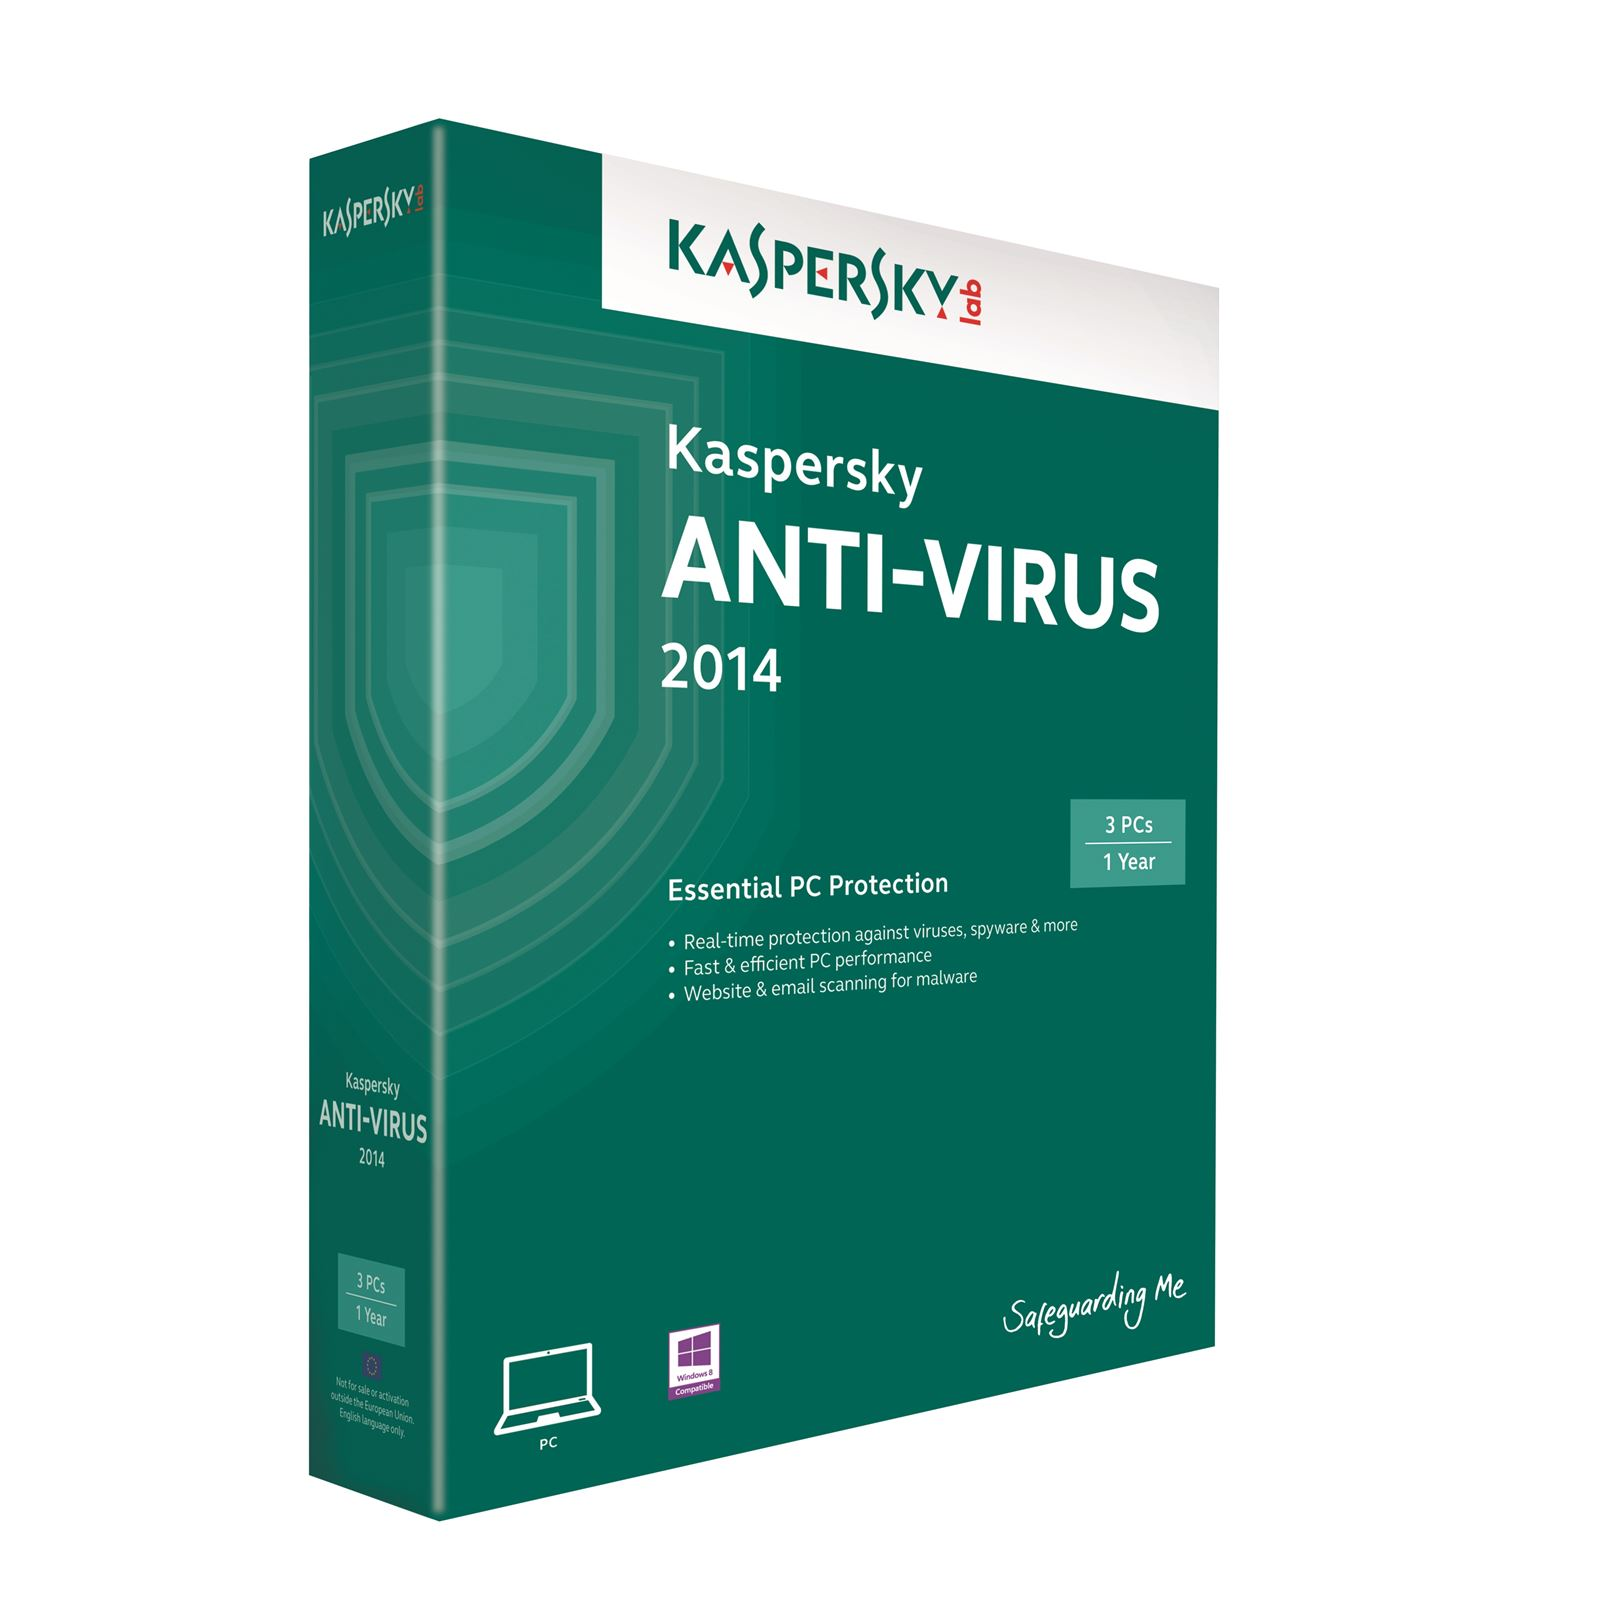 virus and anti virus We always recommend disabling anti-virus software before launching any examinations examsoft does currently partner with the below anti-virus companies to ensure our product is properly whitelisted so that there is not any interruption during the testing experience.